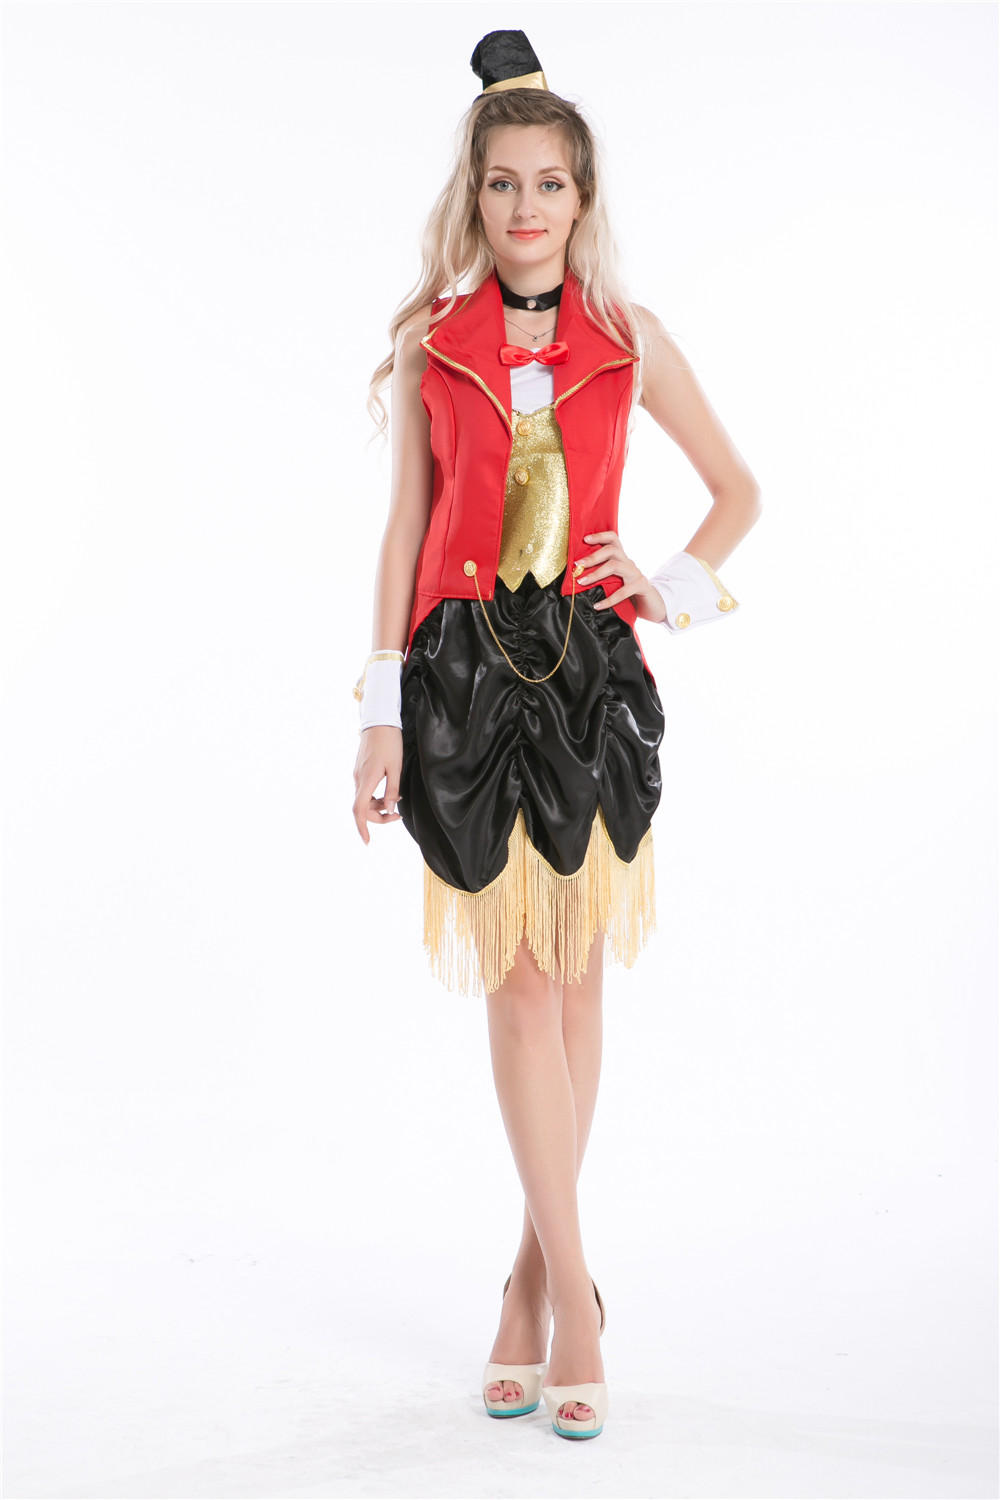 free shipping Circus Lion Tamer Ringmaster Costume Showgirl Fancy Dress S M L XL 2XL